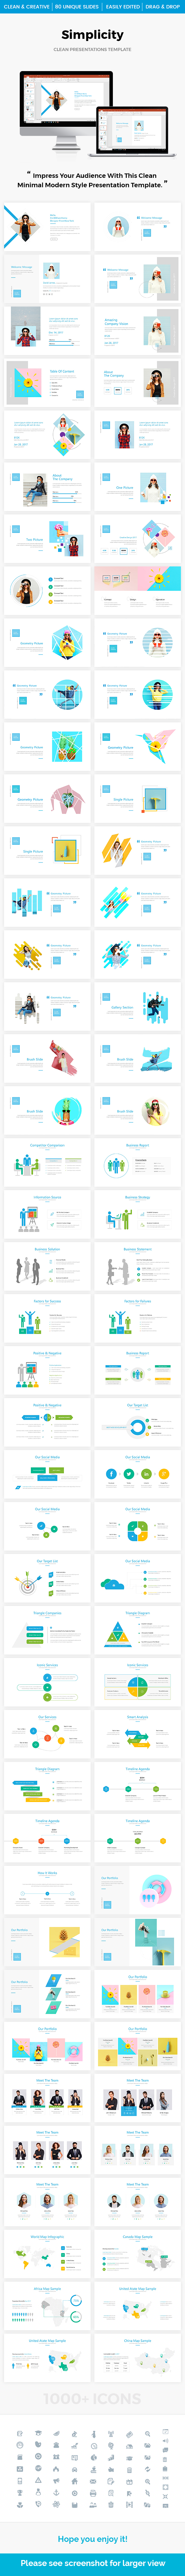 GraphicRiver Simplicity Multipurpose PowerPoint Template 2018 21103365